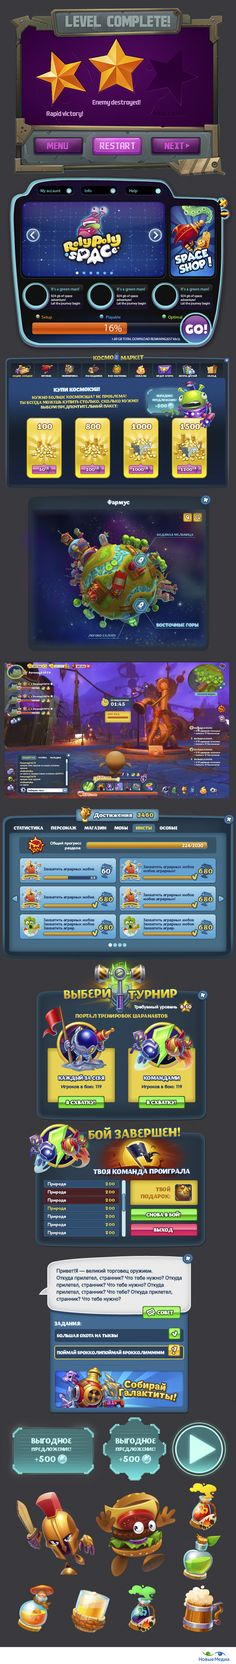 Game UI by Ju Ju, via Behance